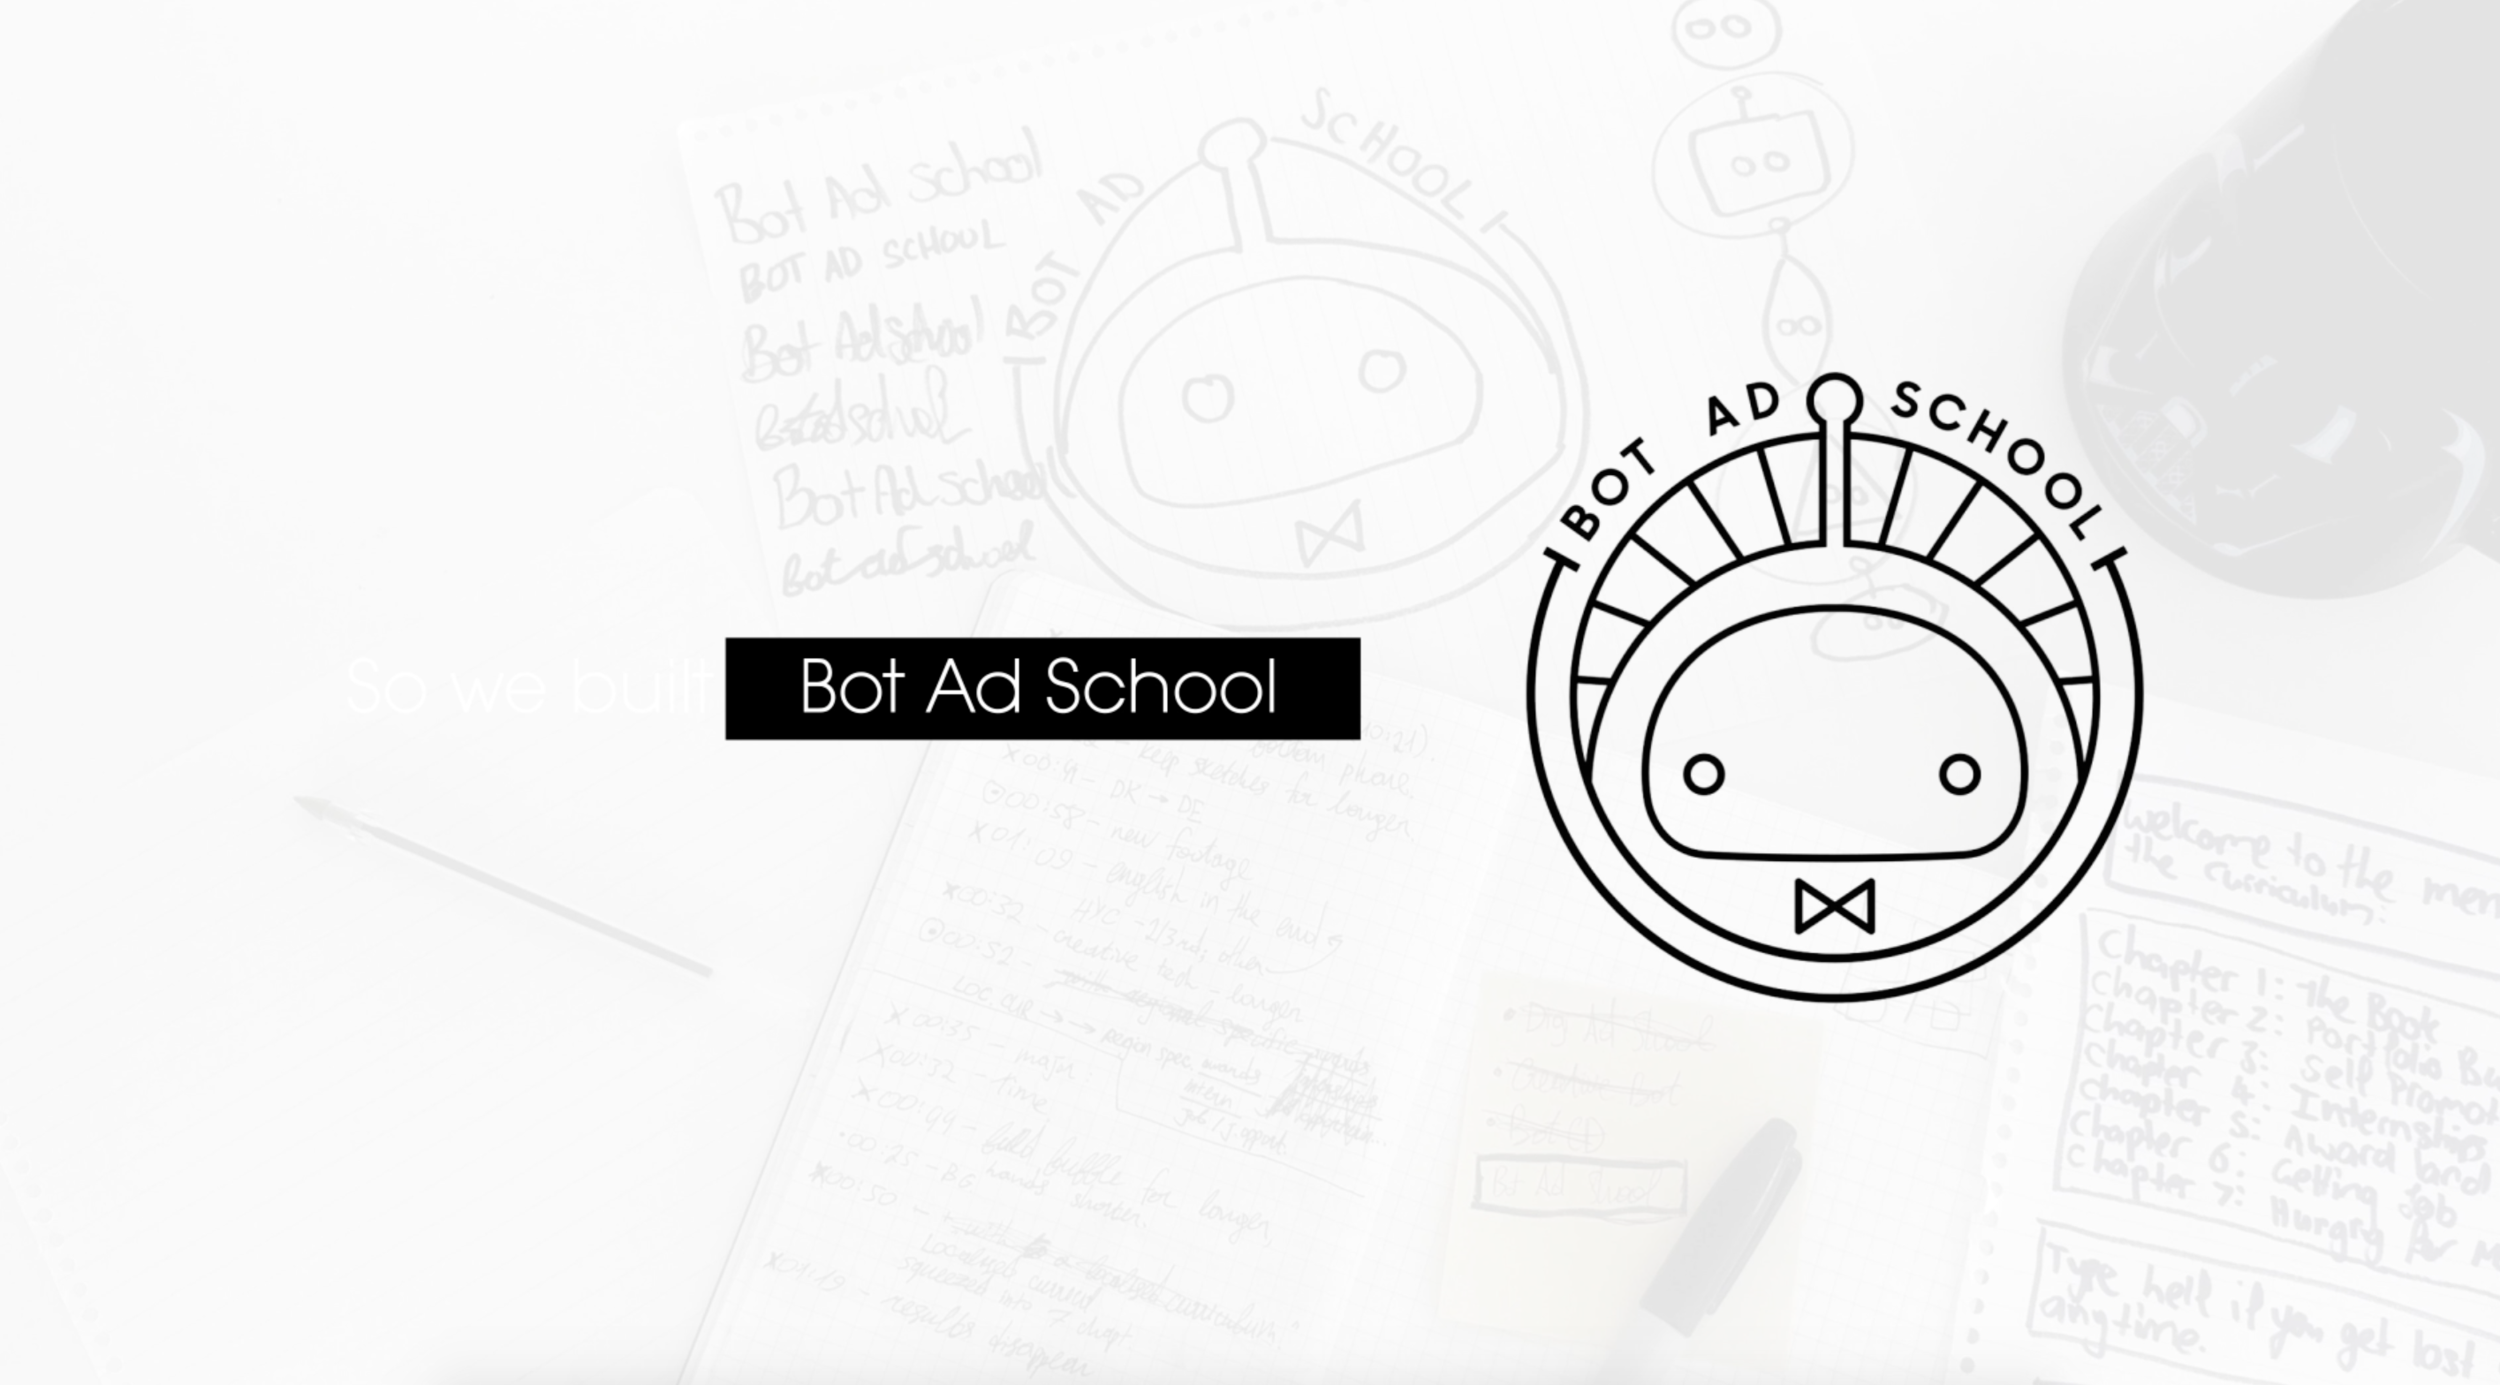 Bot Ad School // Facebook Chatbot Team: Samantha Cable, Daniel Liakh   BAS was created to make the industry more accessible for younger creatives living in regional areas or those who don't have the opportunity to go to ad school.